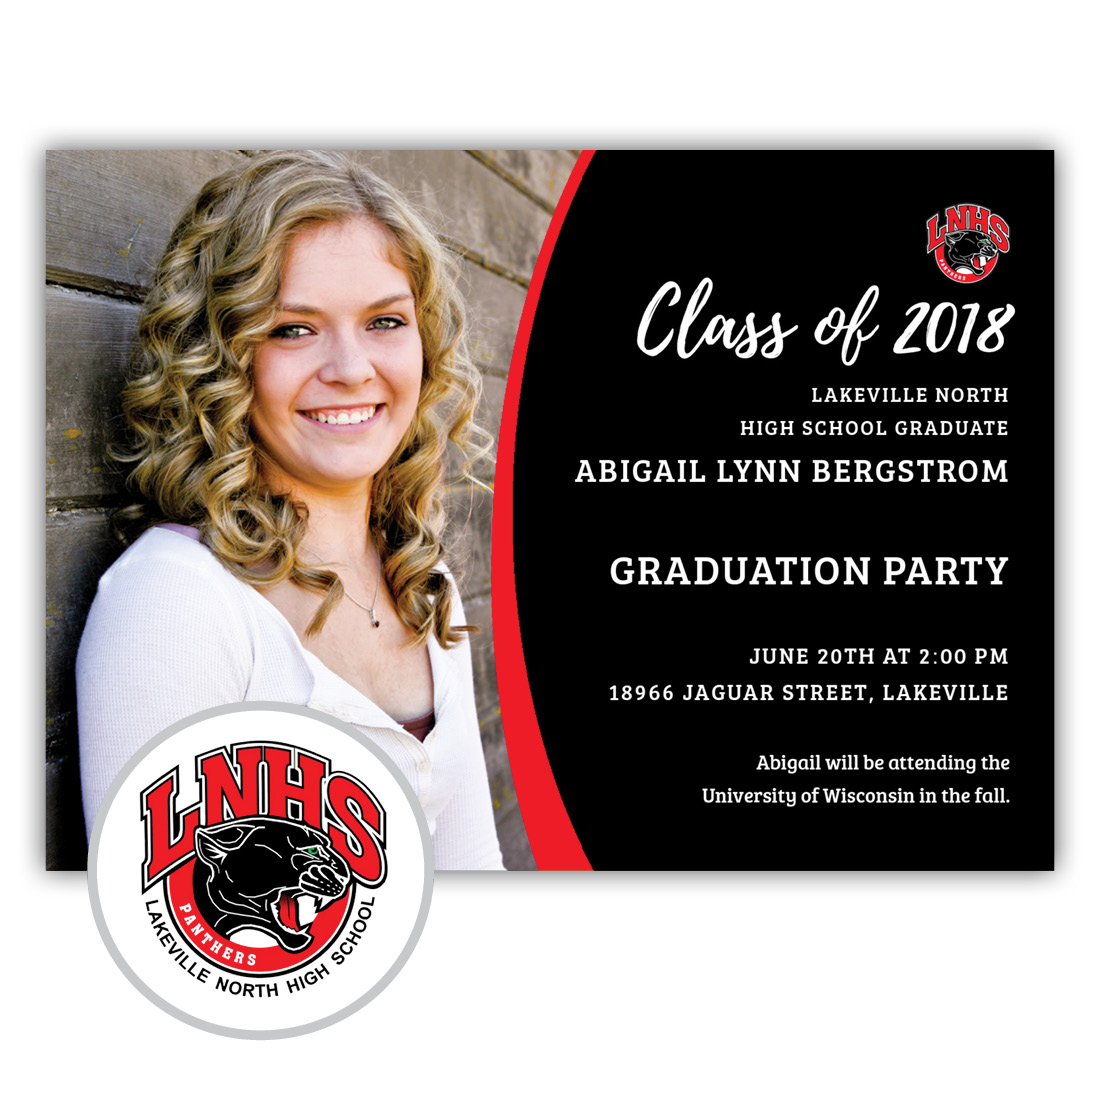 School Spirit, Lakeville North - Focus in Pix Graduation Party Invitation or Announcement